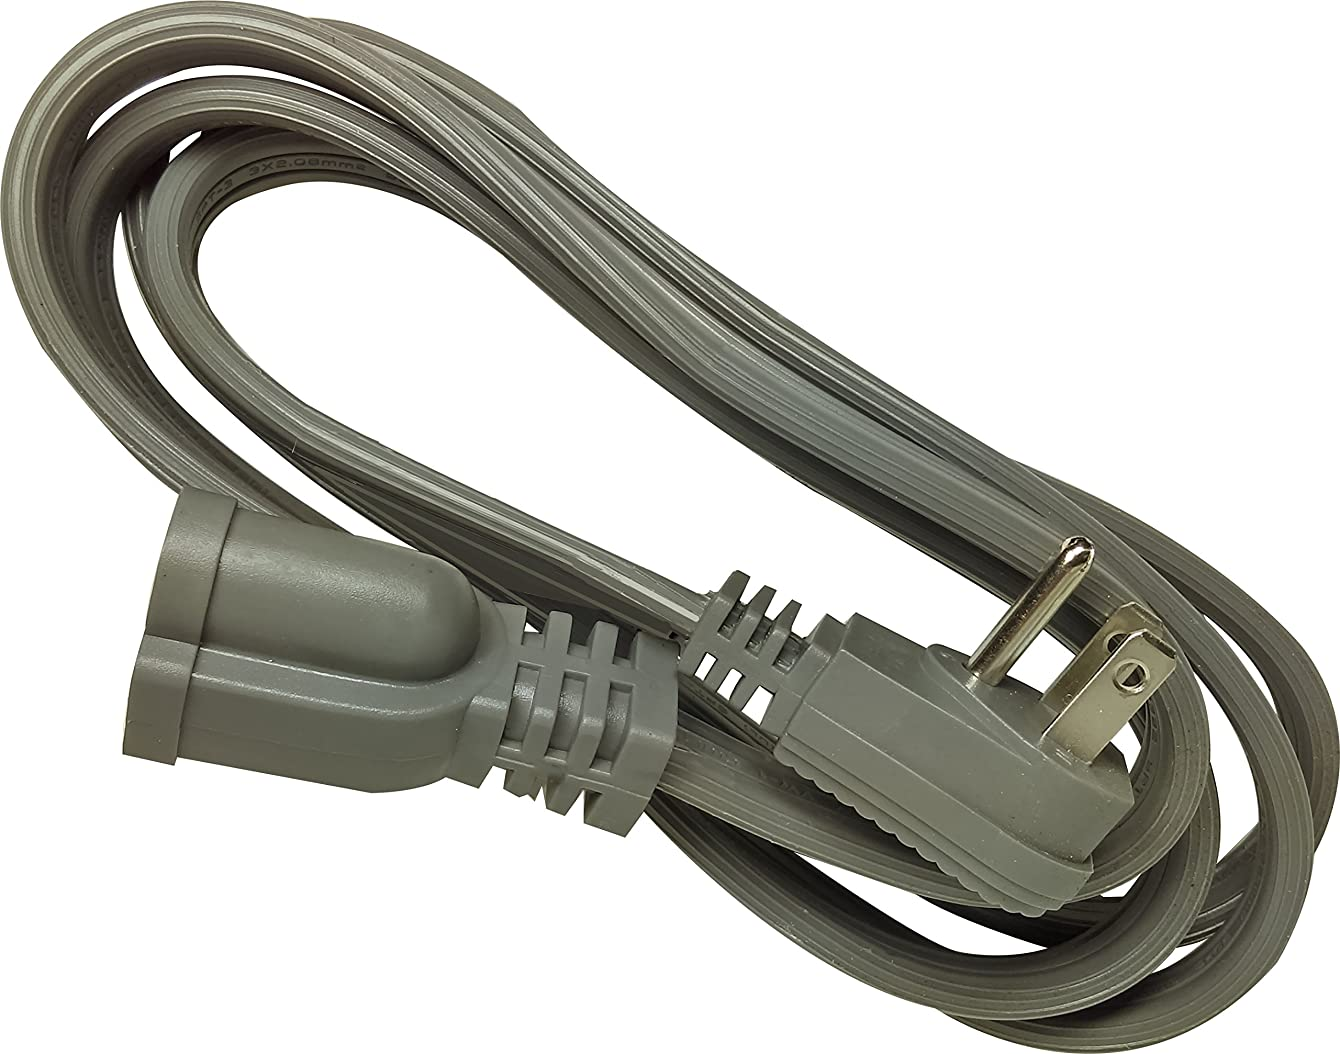 Appliance Extension Cord for AC Air Conditioner Washer Dryer Power Cable 6ft 9ft 12ft (6 Foot)